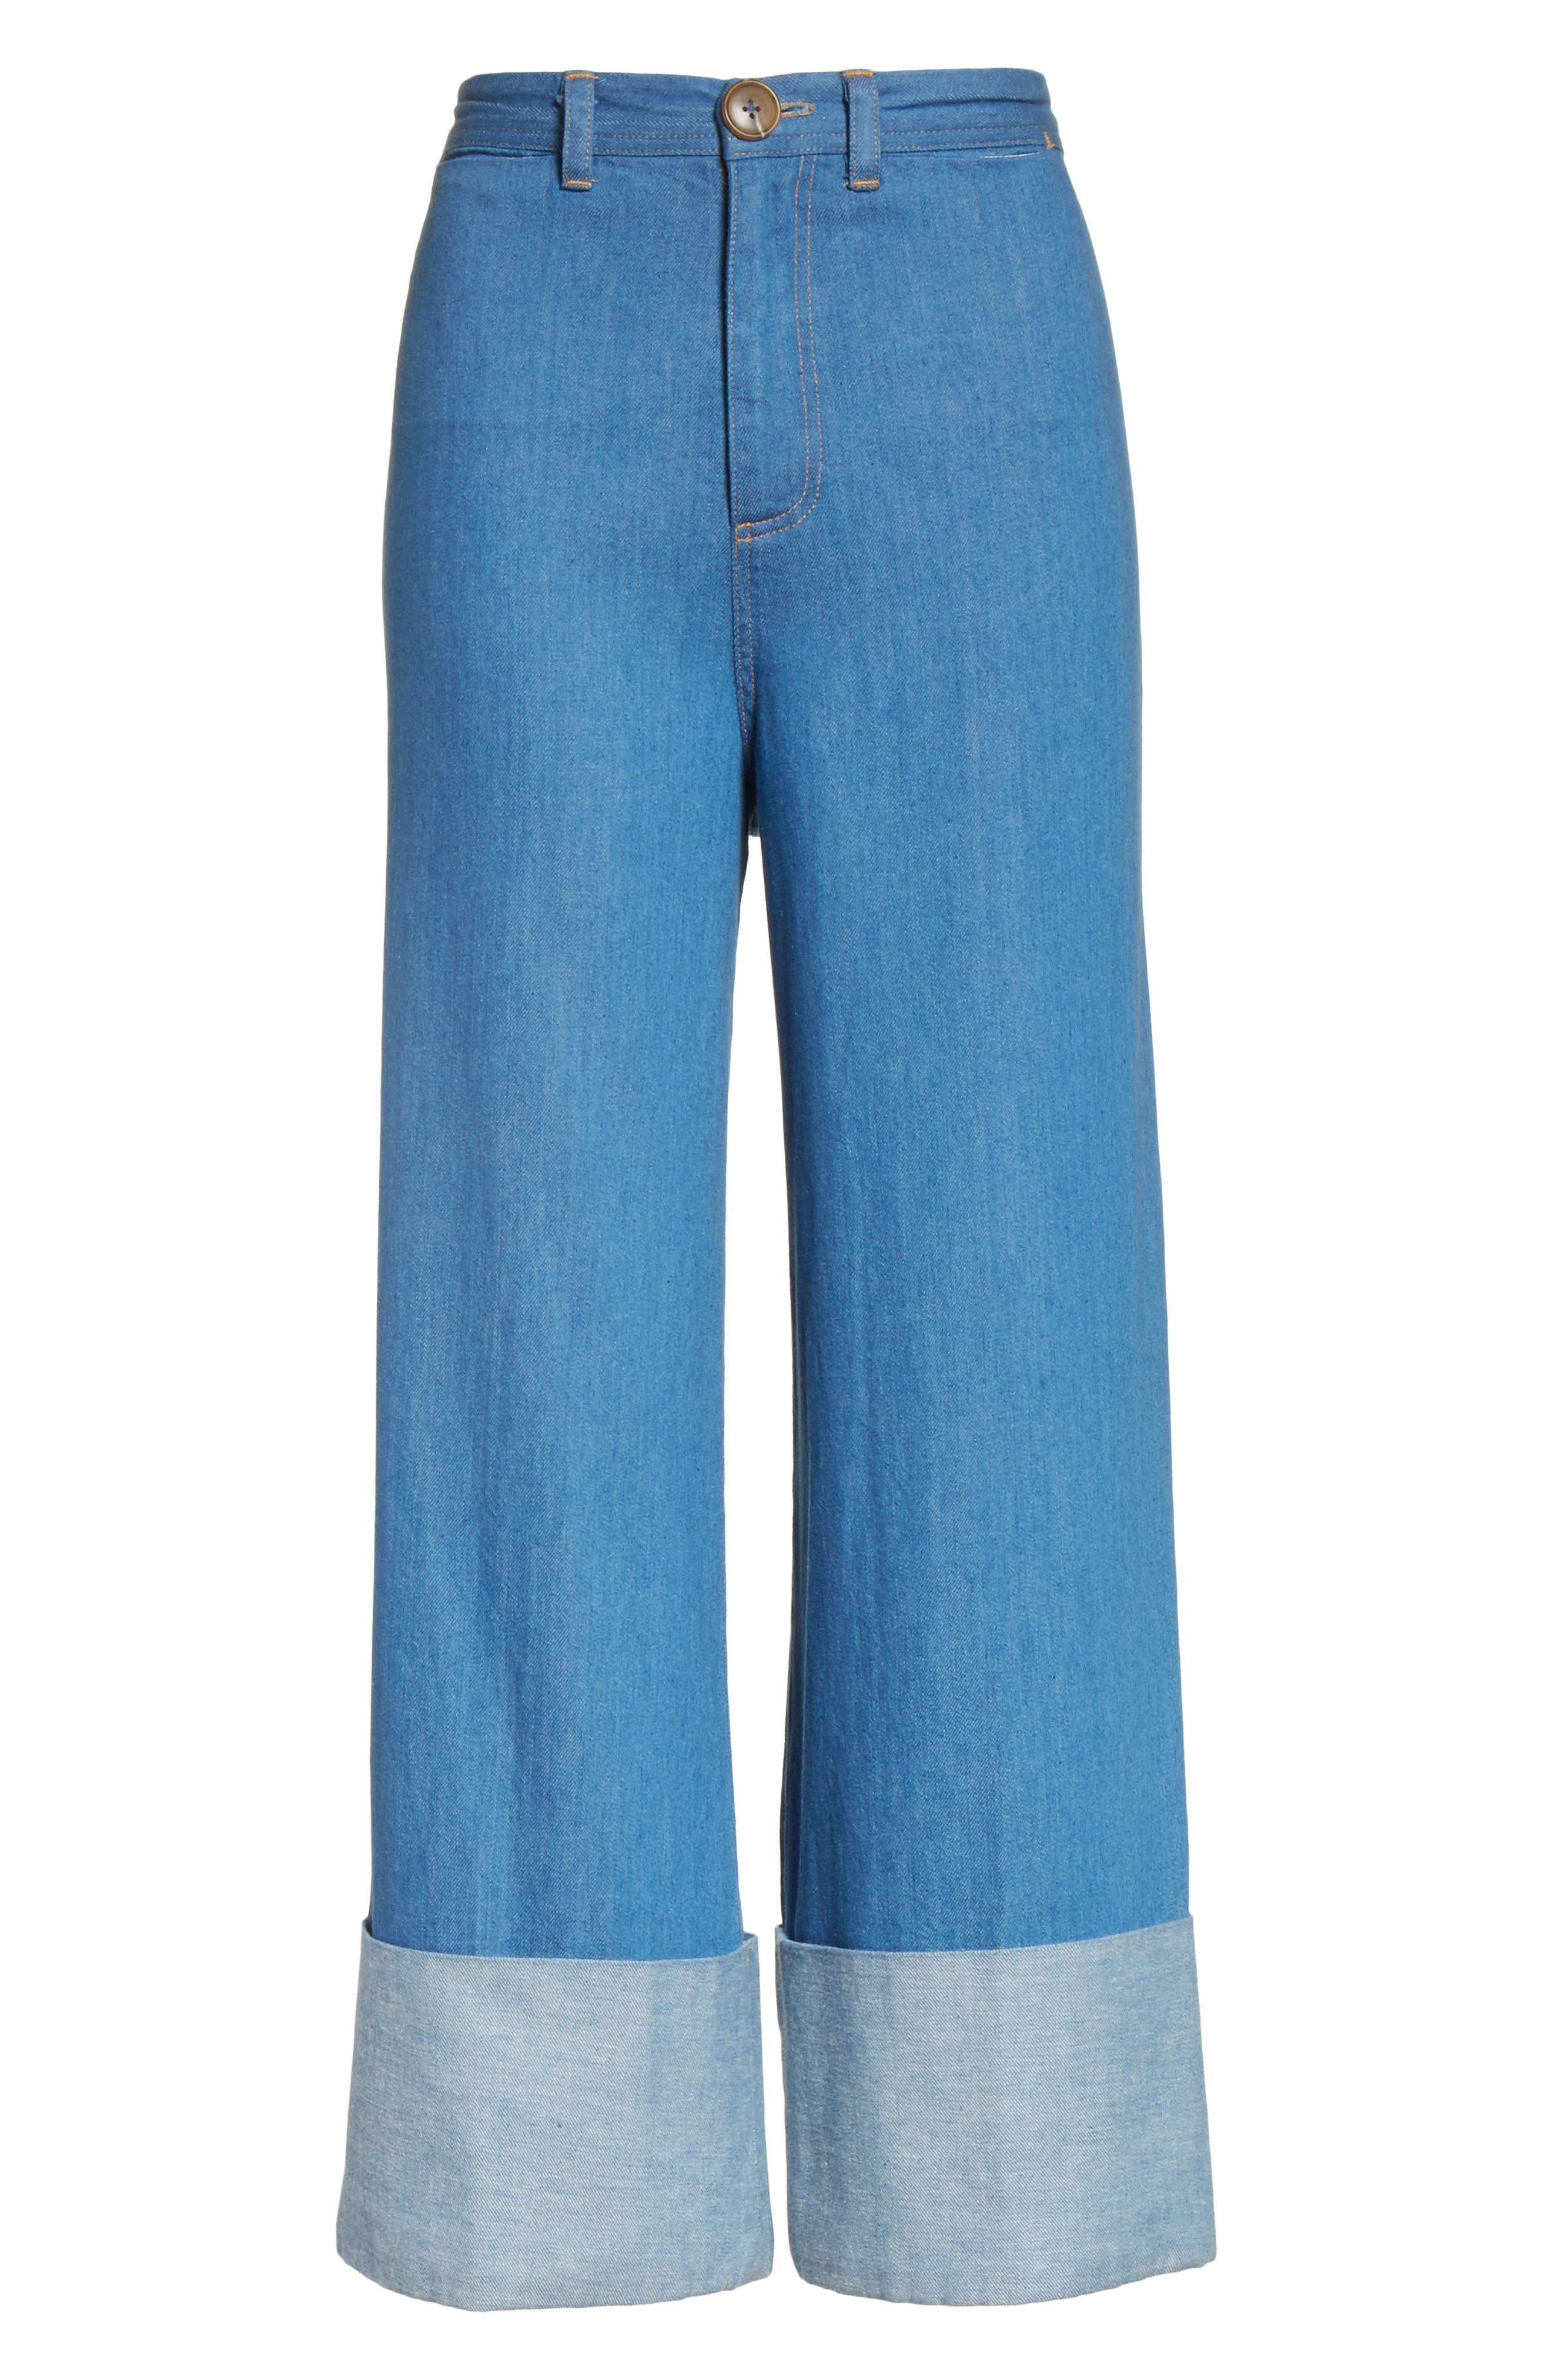 Classic Cuffed Wide Leg Jeans,                             Alternate thumbnail 7, color,                             Light Indigo